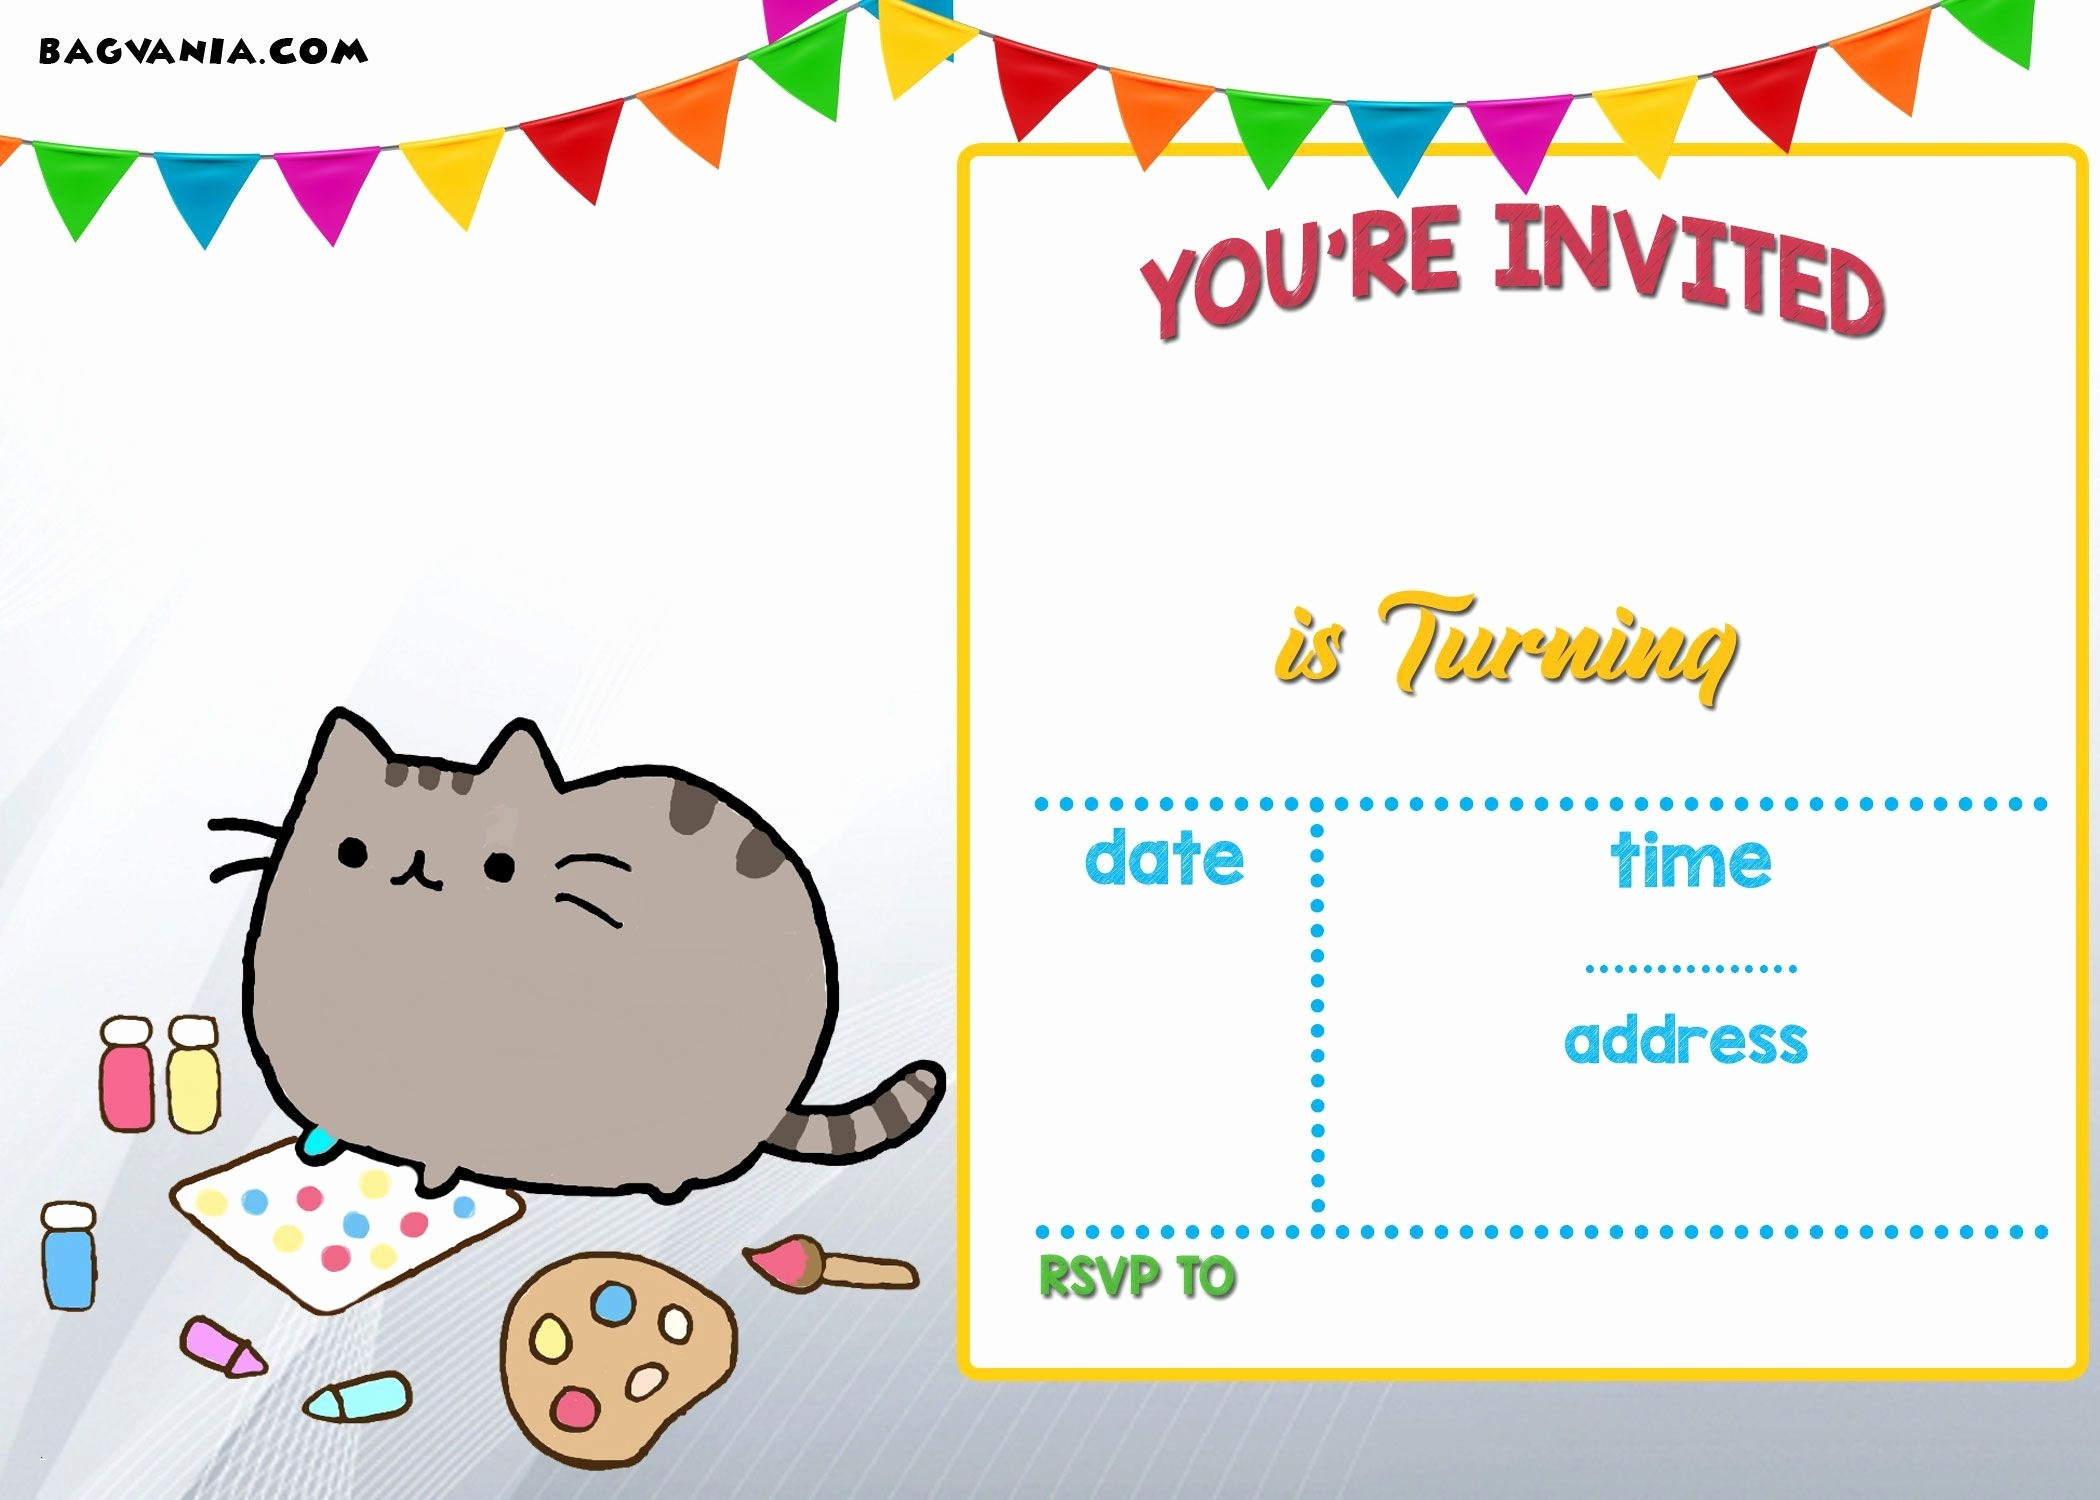 Free Birthday Cards For Printing At Home -32 Fresh Email Birthday - Free Printable Russian Birthday Cards